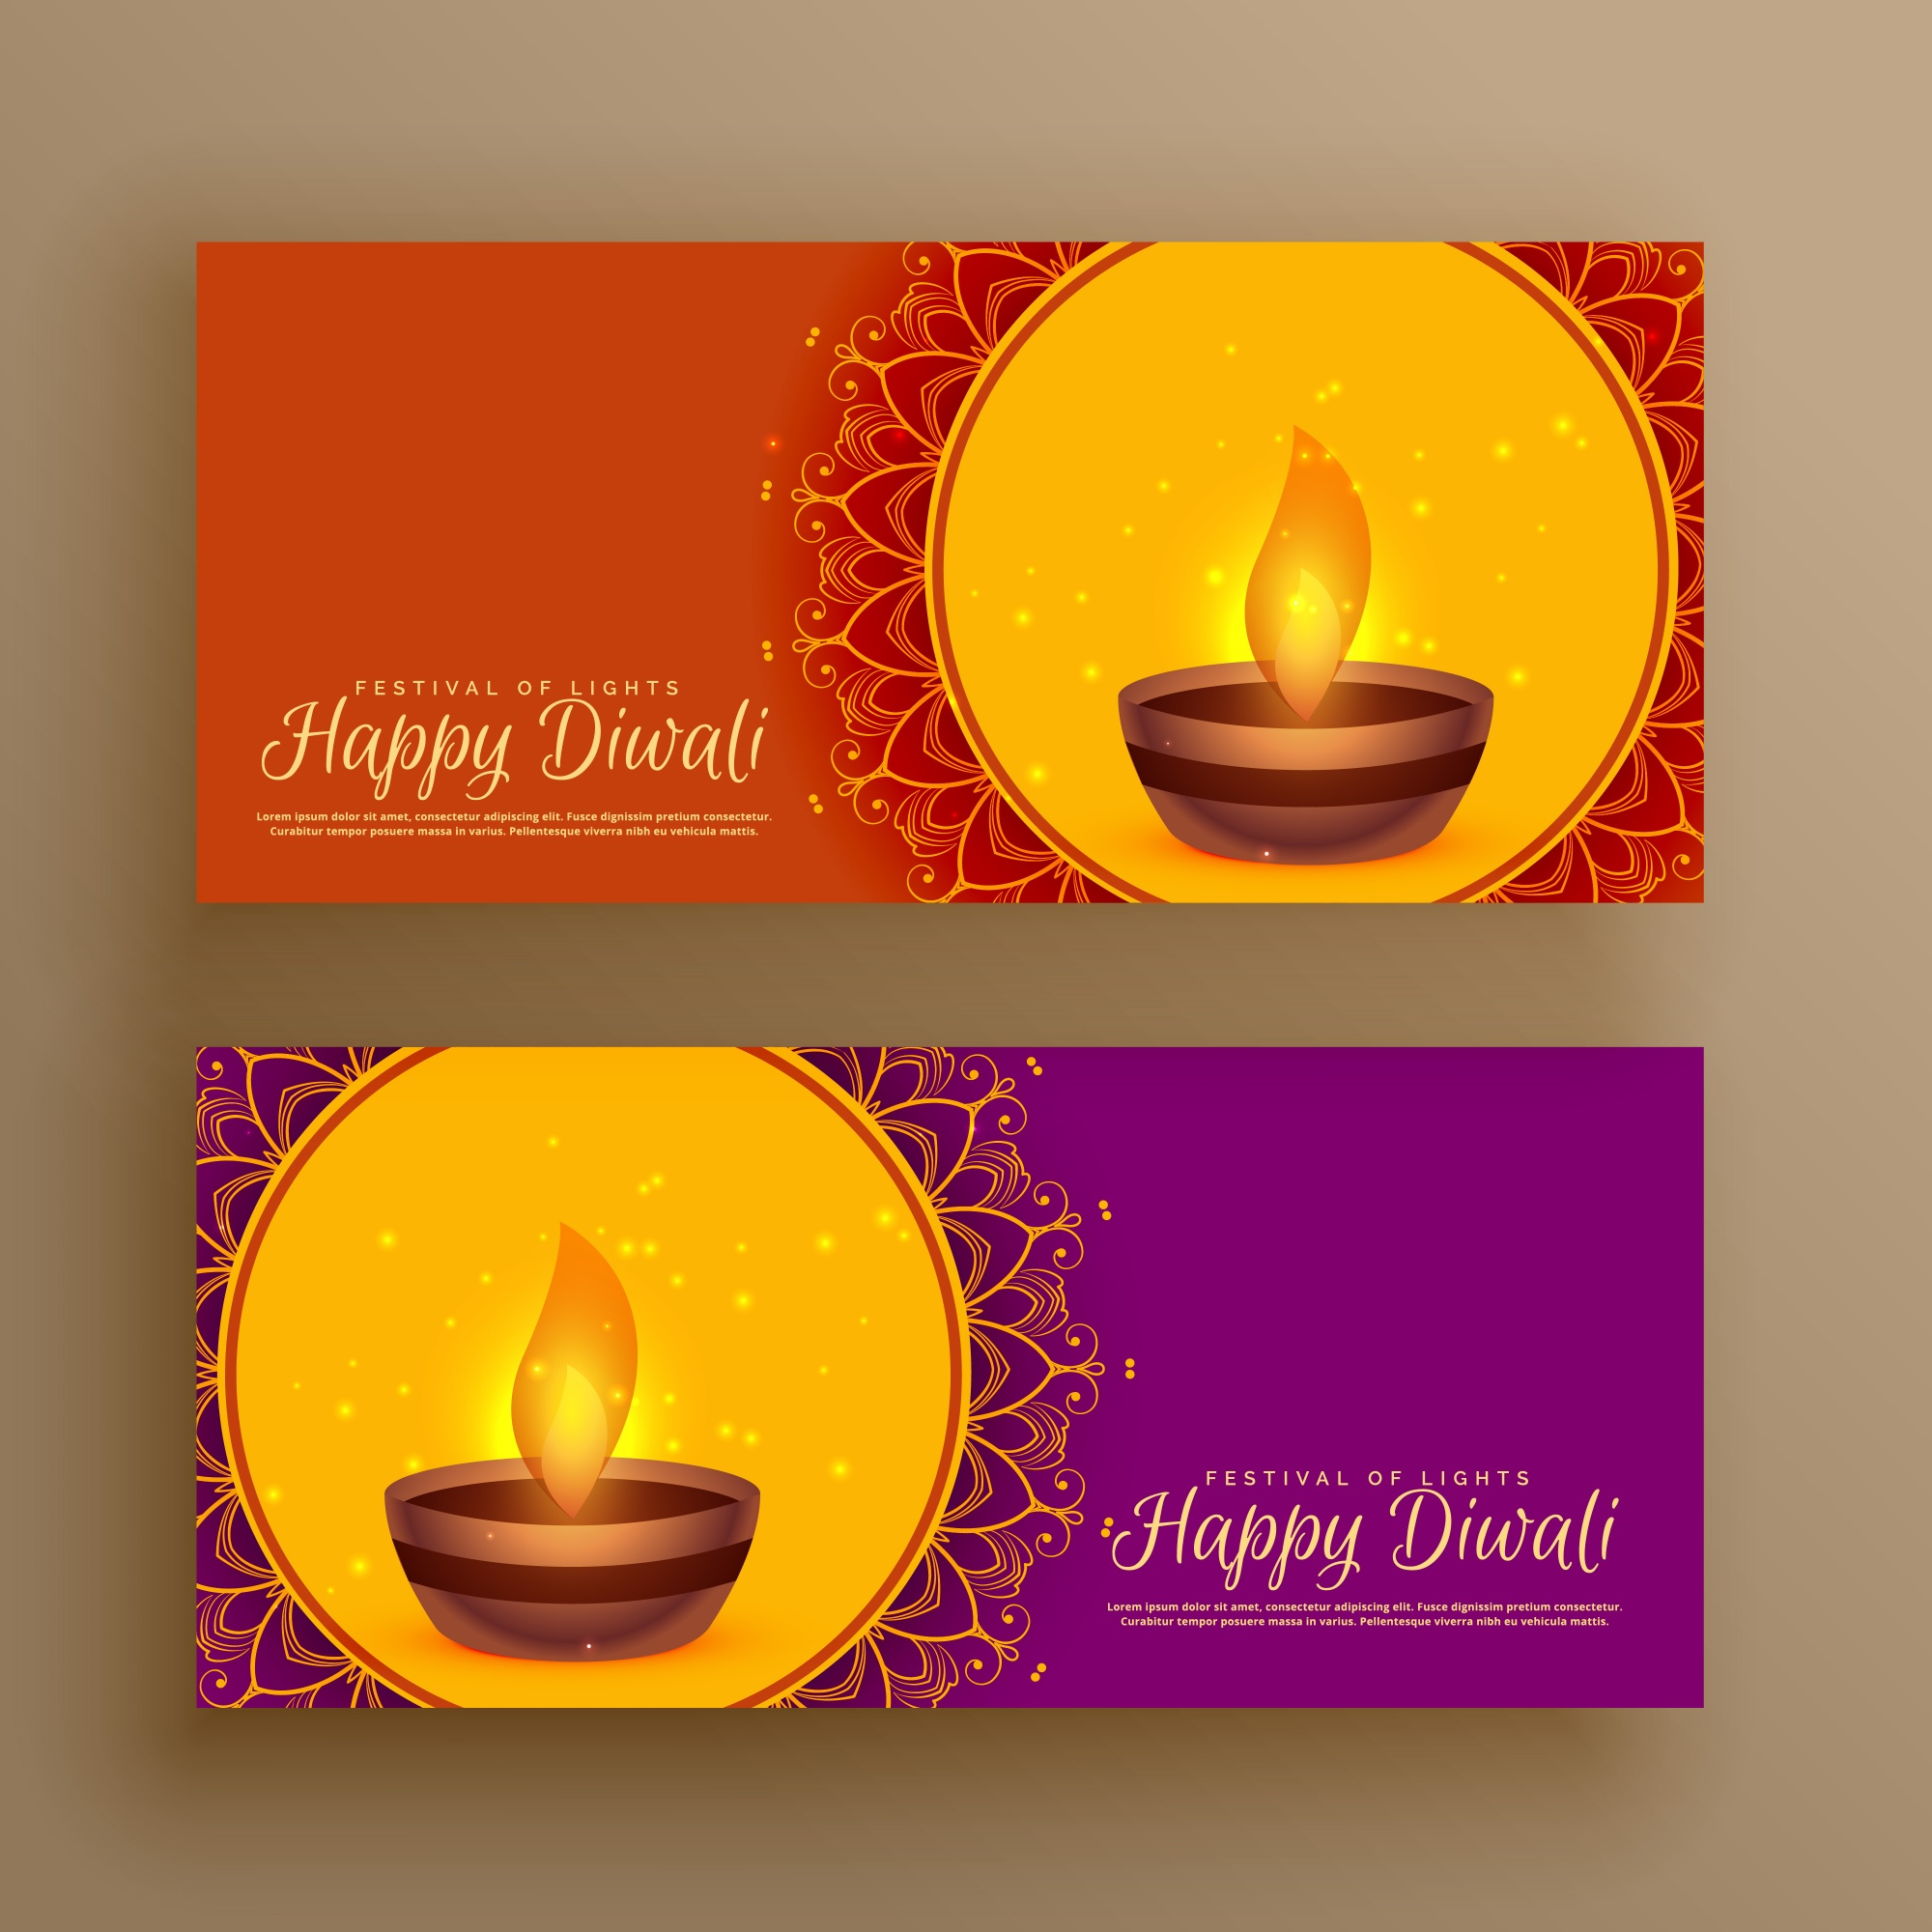 Diwali festival greeting banners vector background